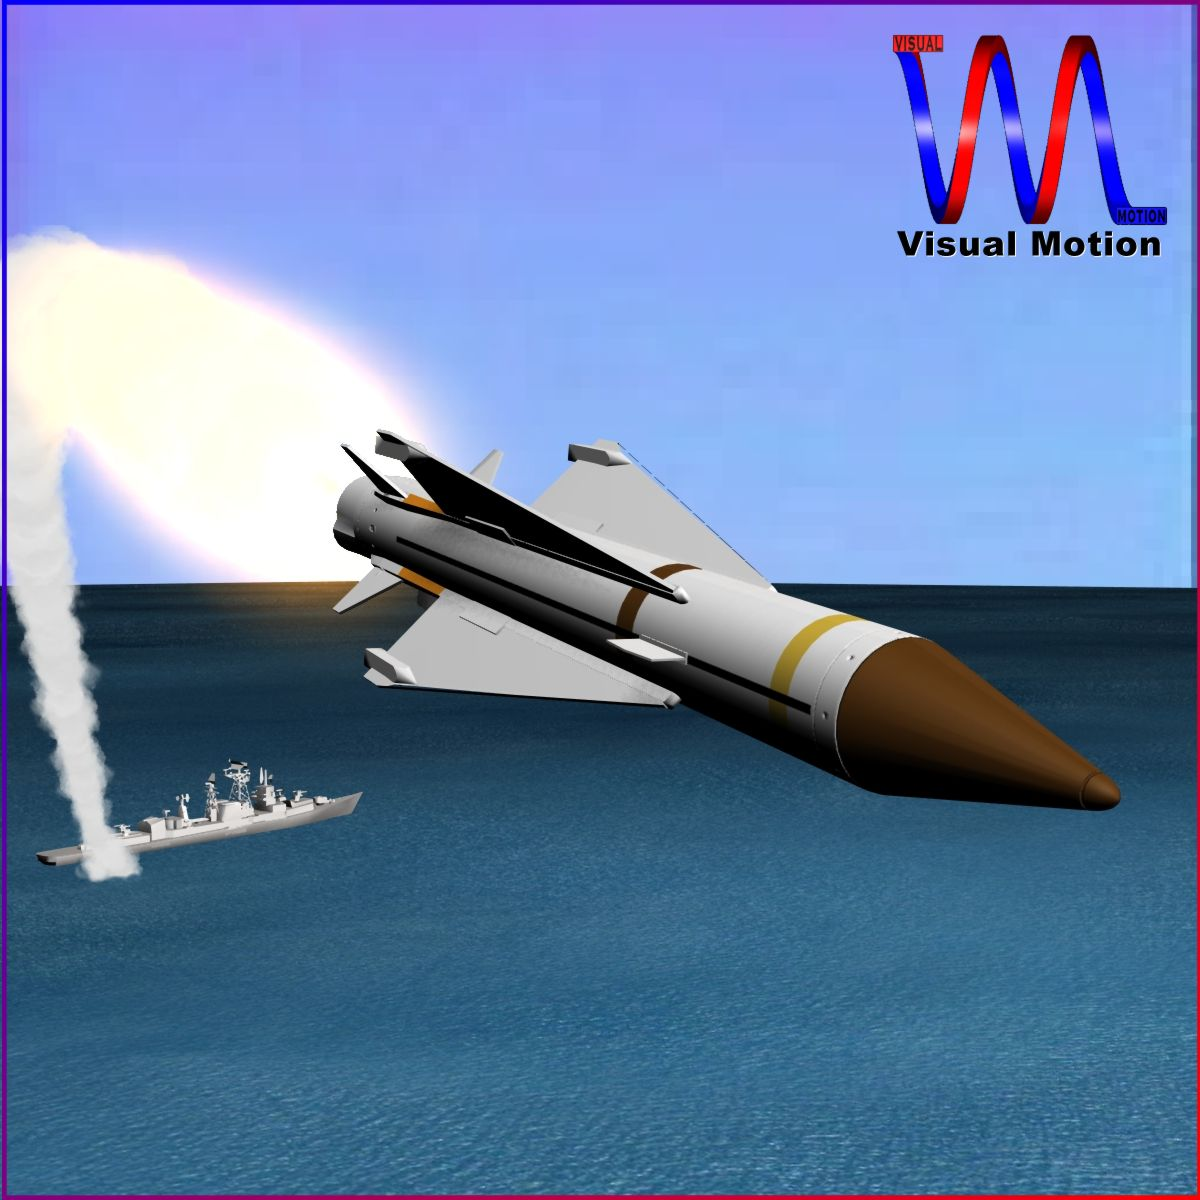 uk sea wolf missile 3d model 3ds dxf cob x obj 153048